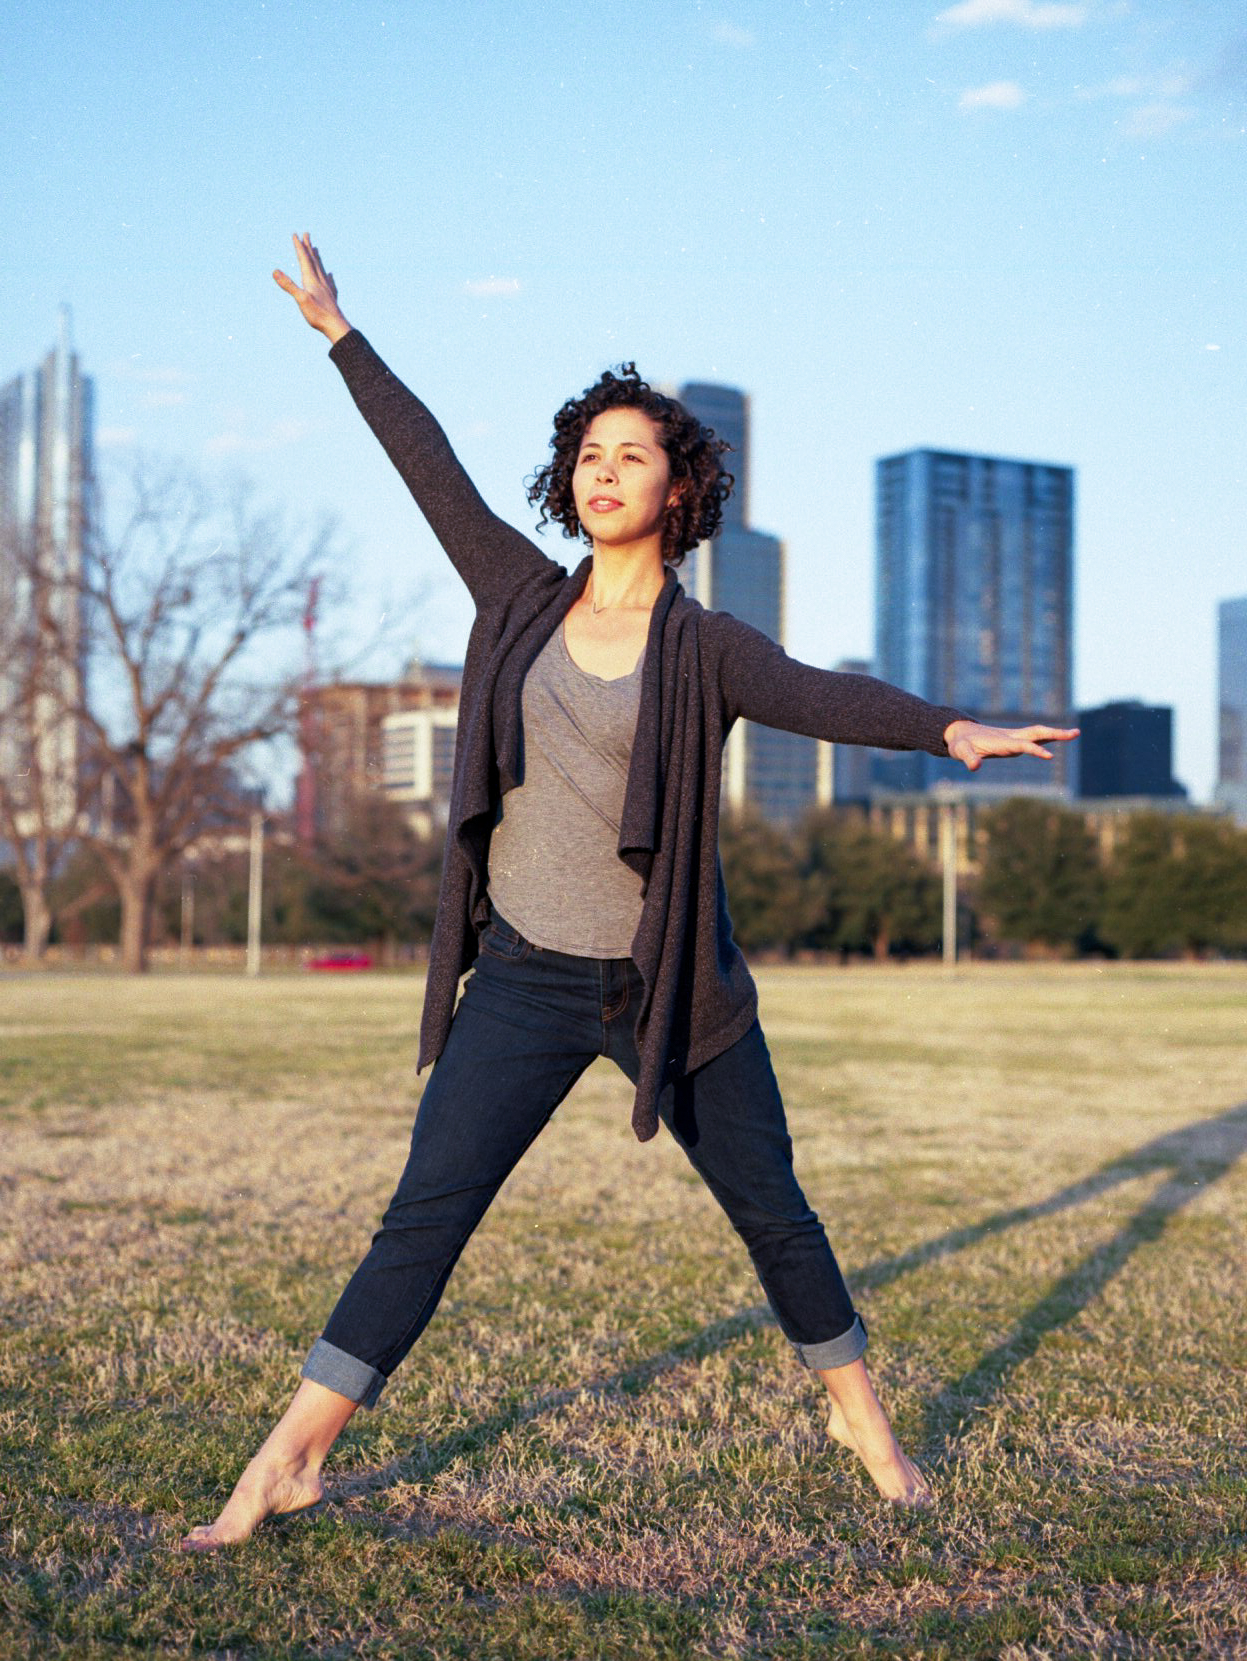 Jessica stands tall in front of Auditorium Shores